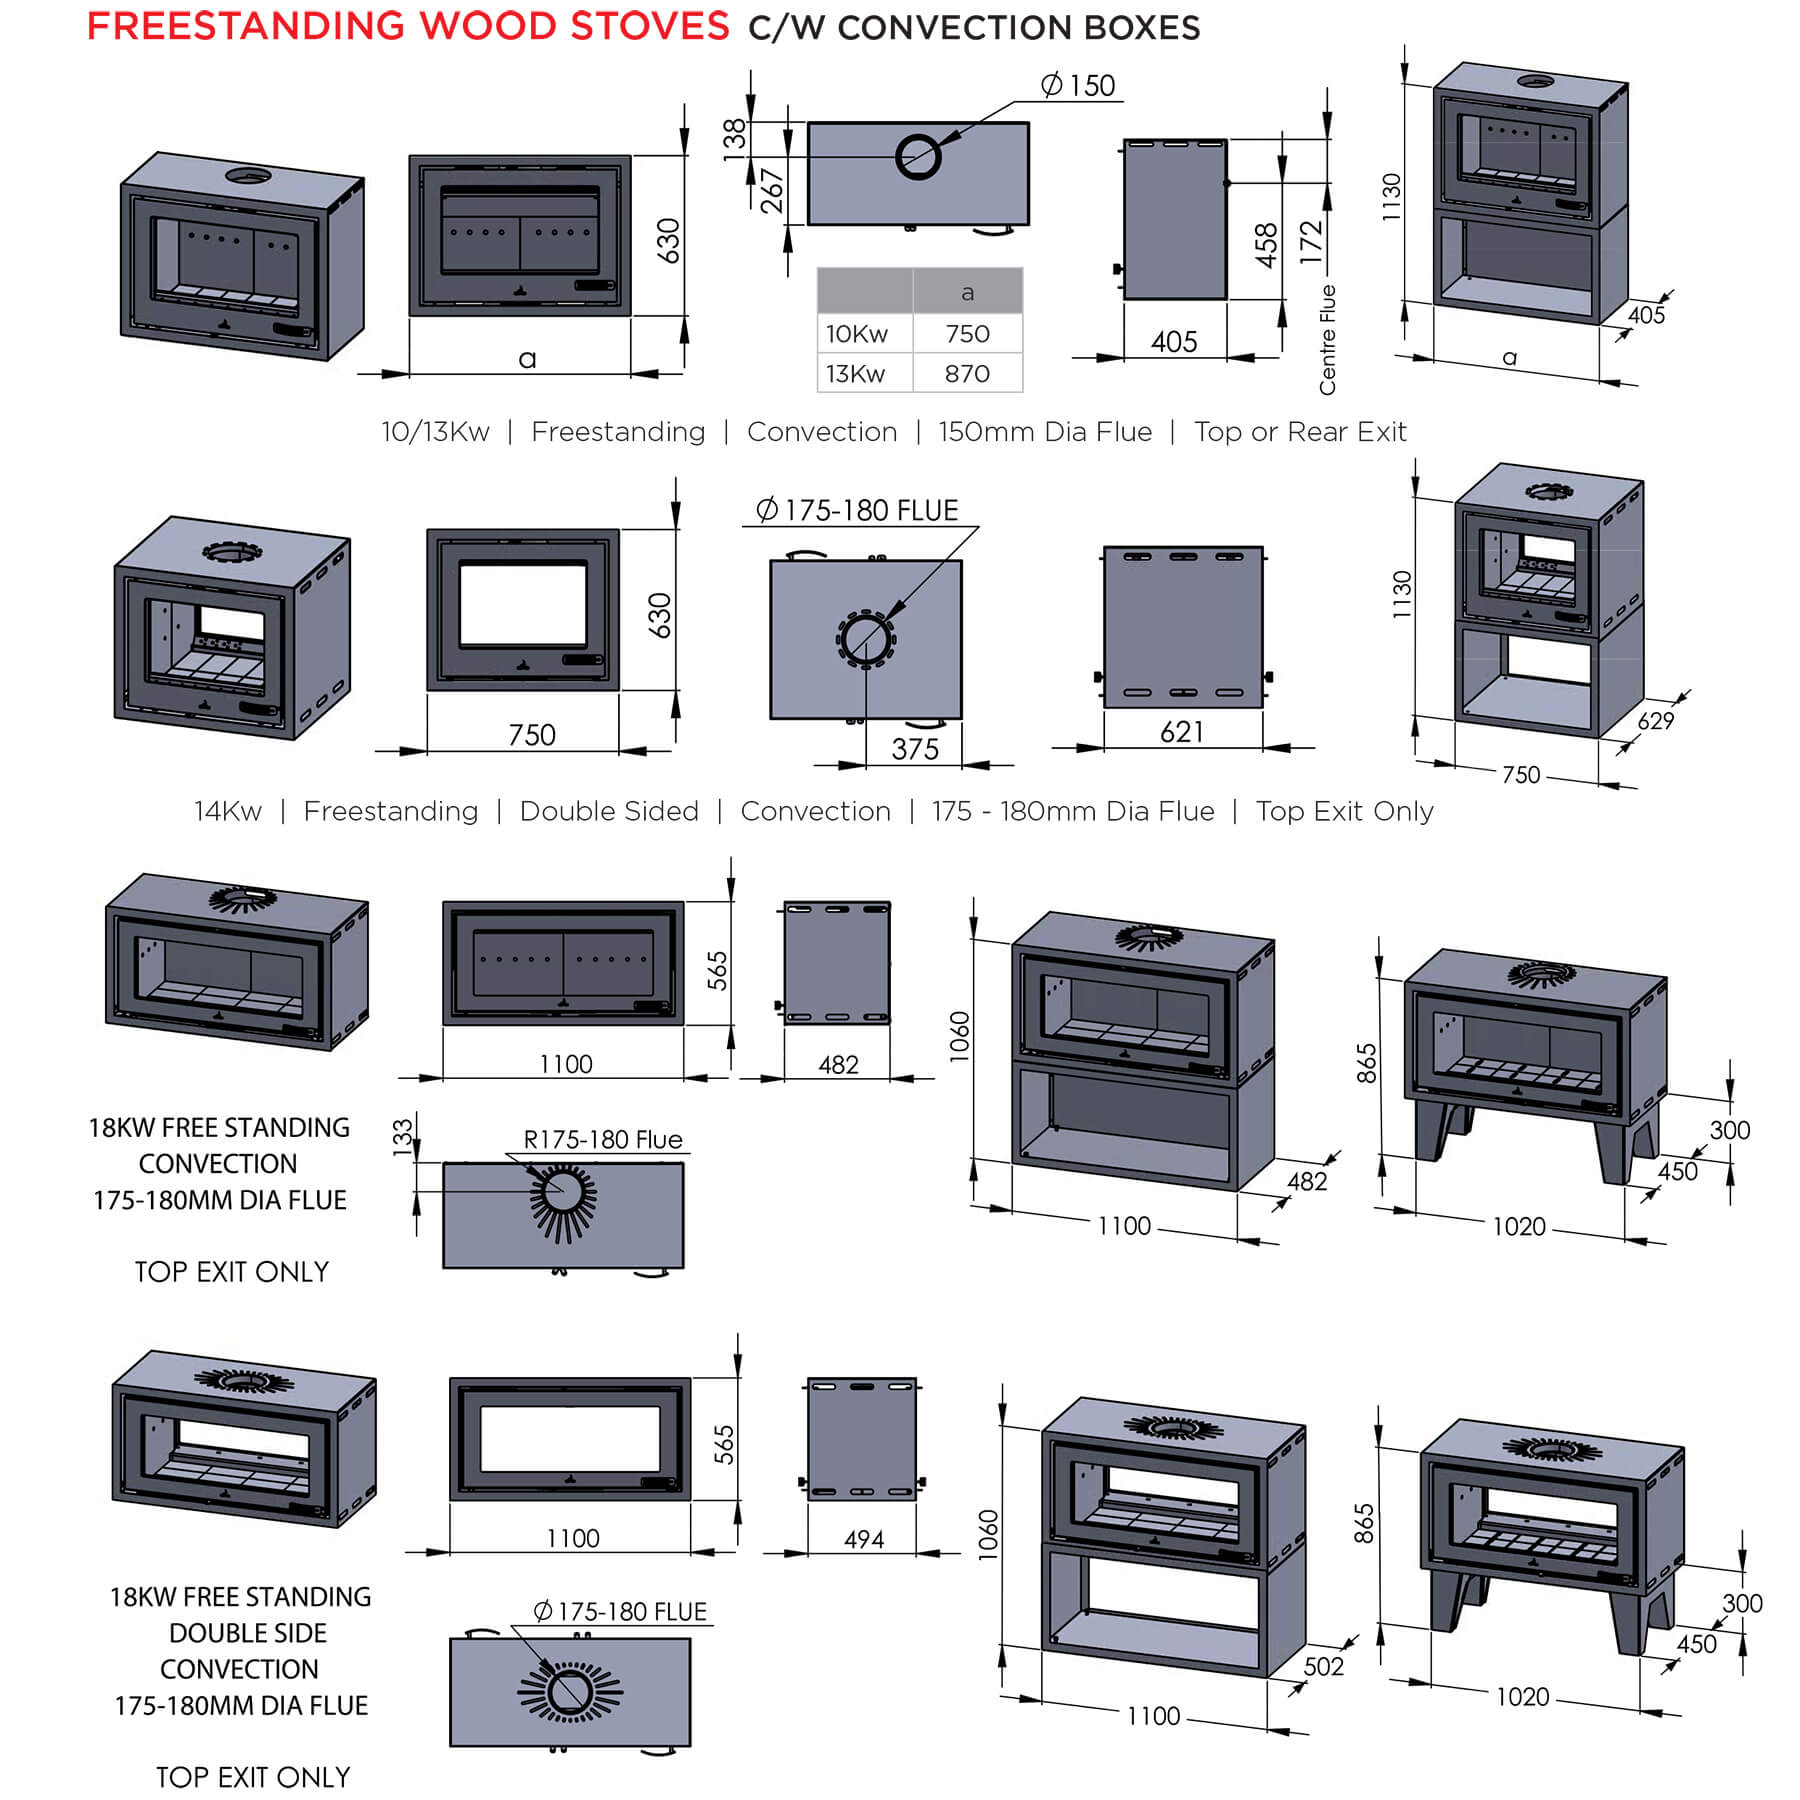 Technical-Specifications-Freestanding-Wood-Stoves2